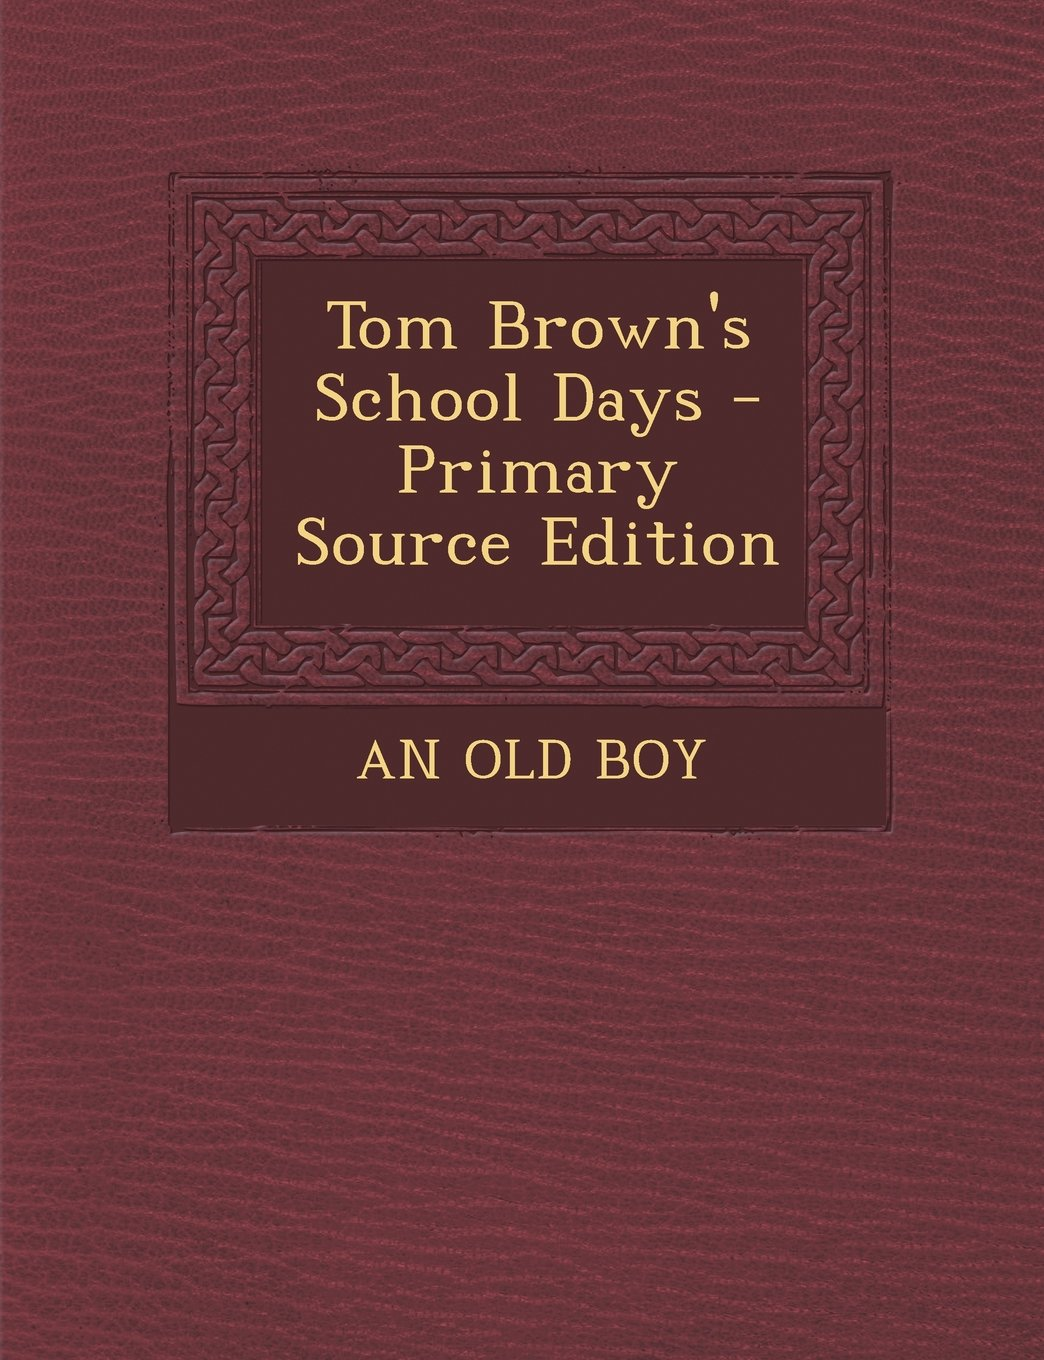 Read Online Tom Brown's School Days - Primary Source Edition PDF